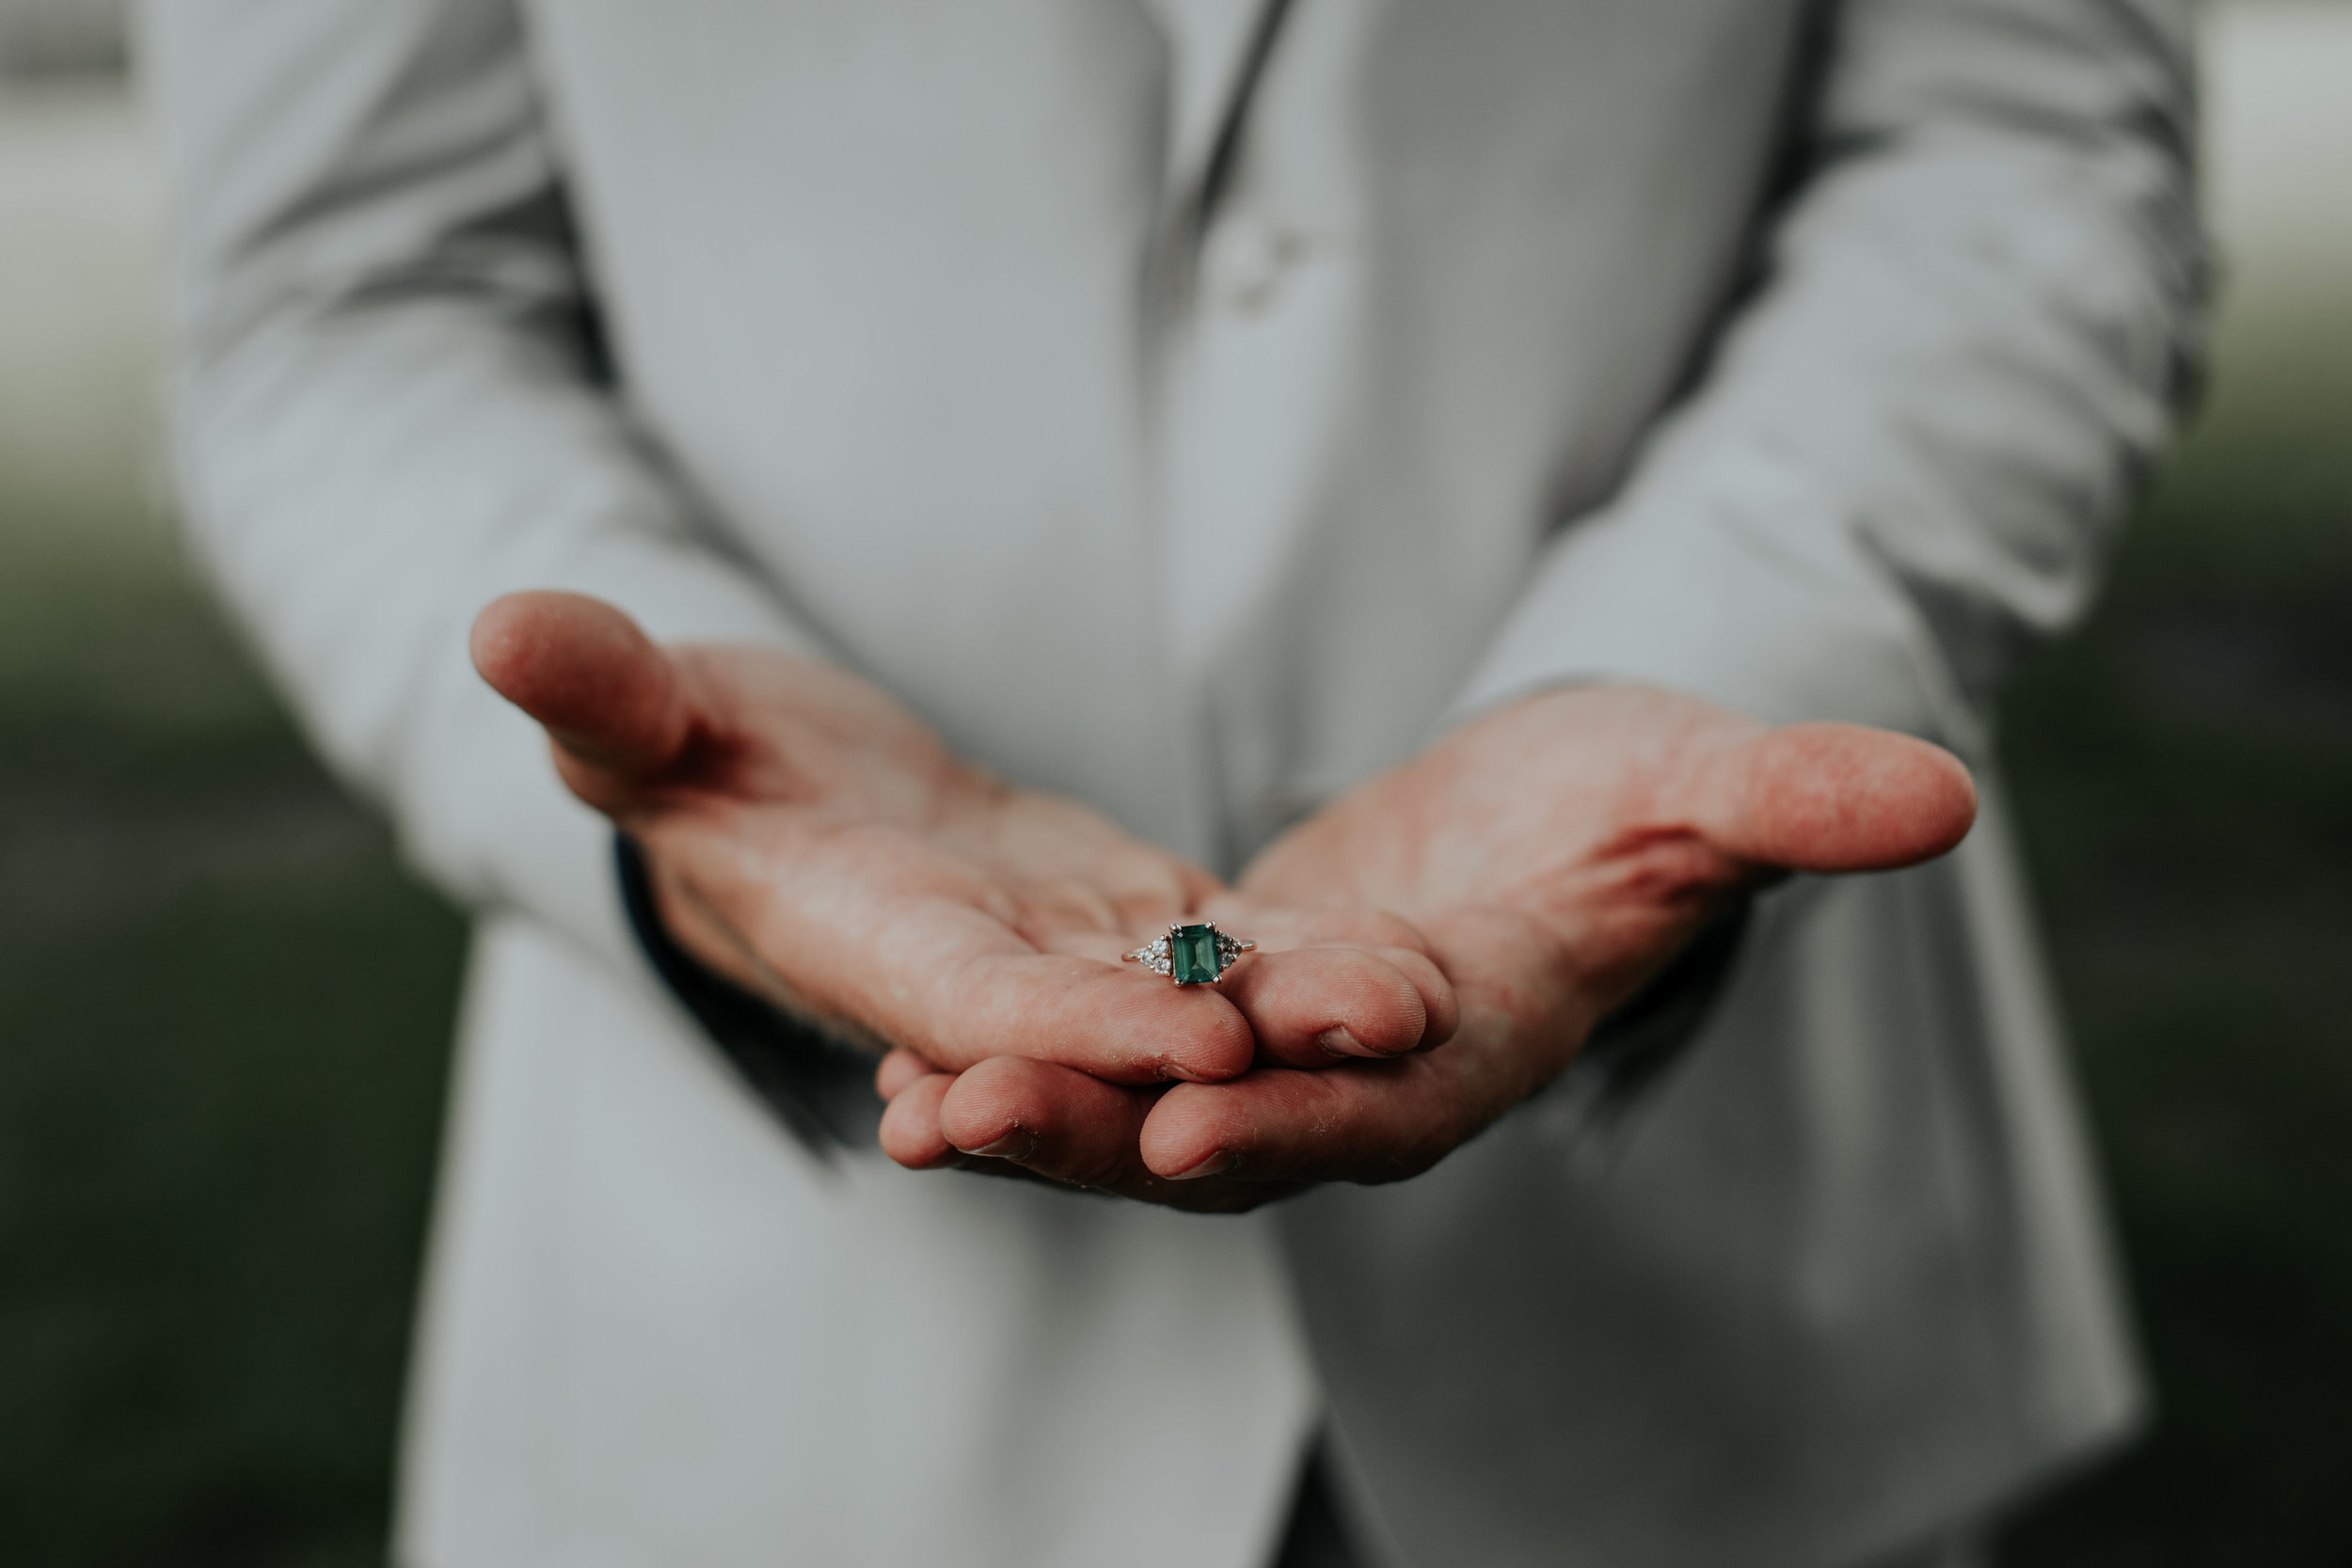 Groom holding rings | Be Images